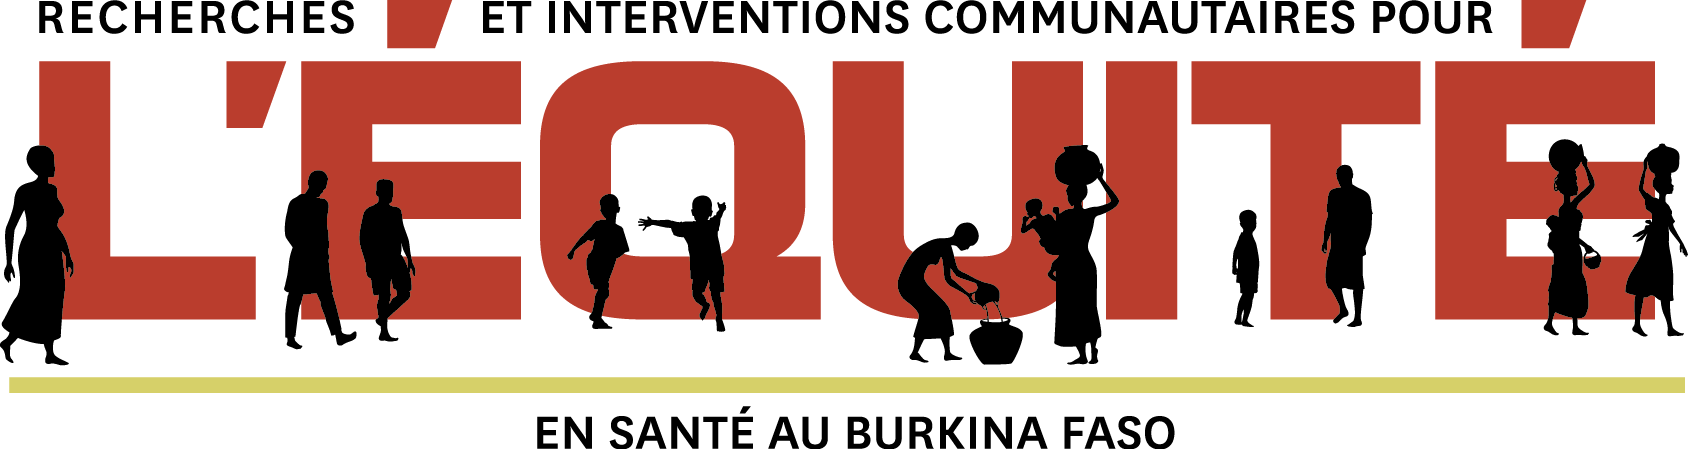 Research and community-based interventions for health equity in Burkina Faso project